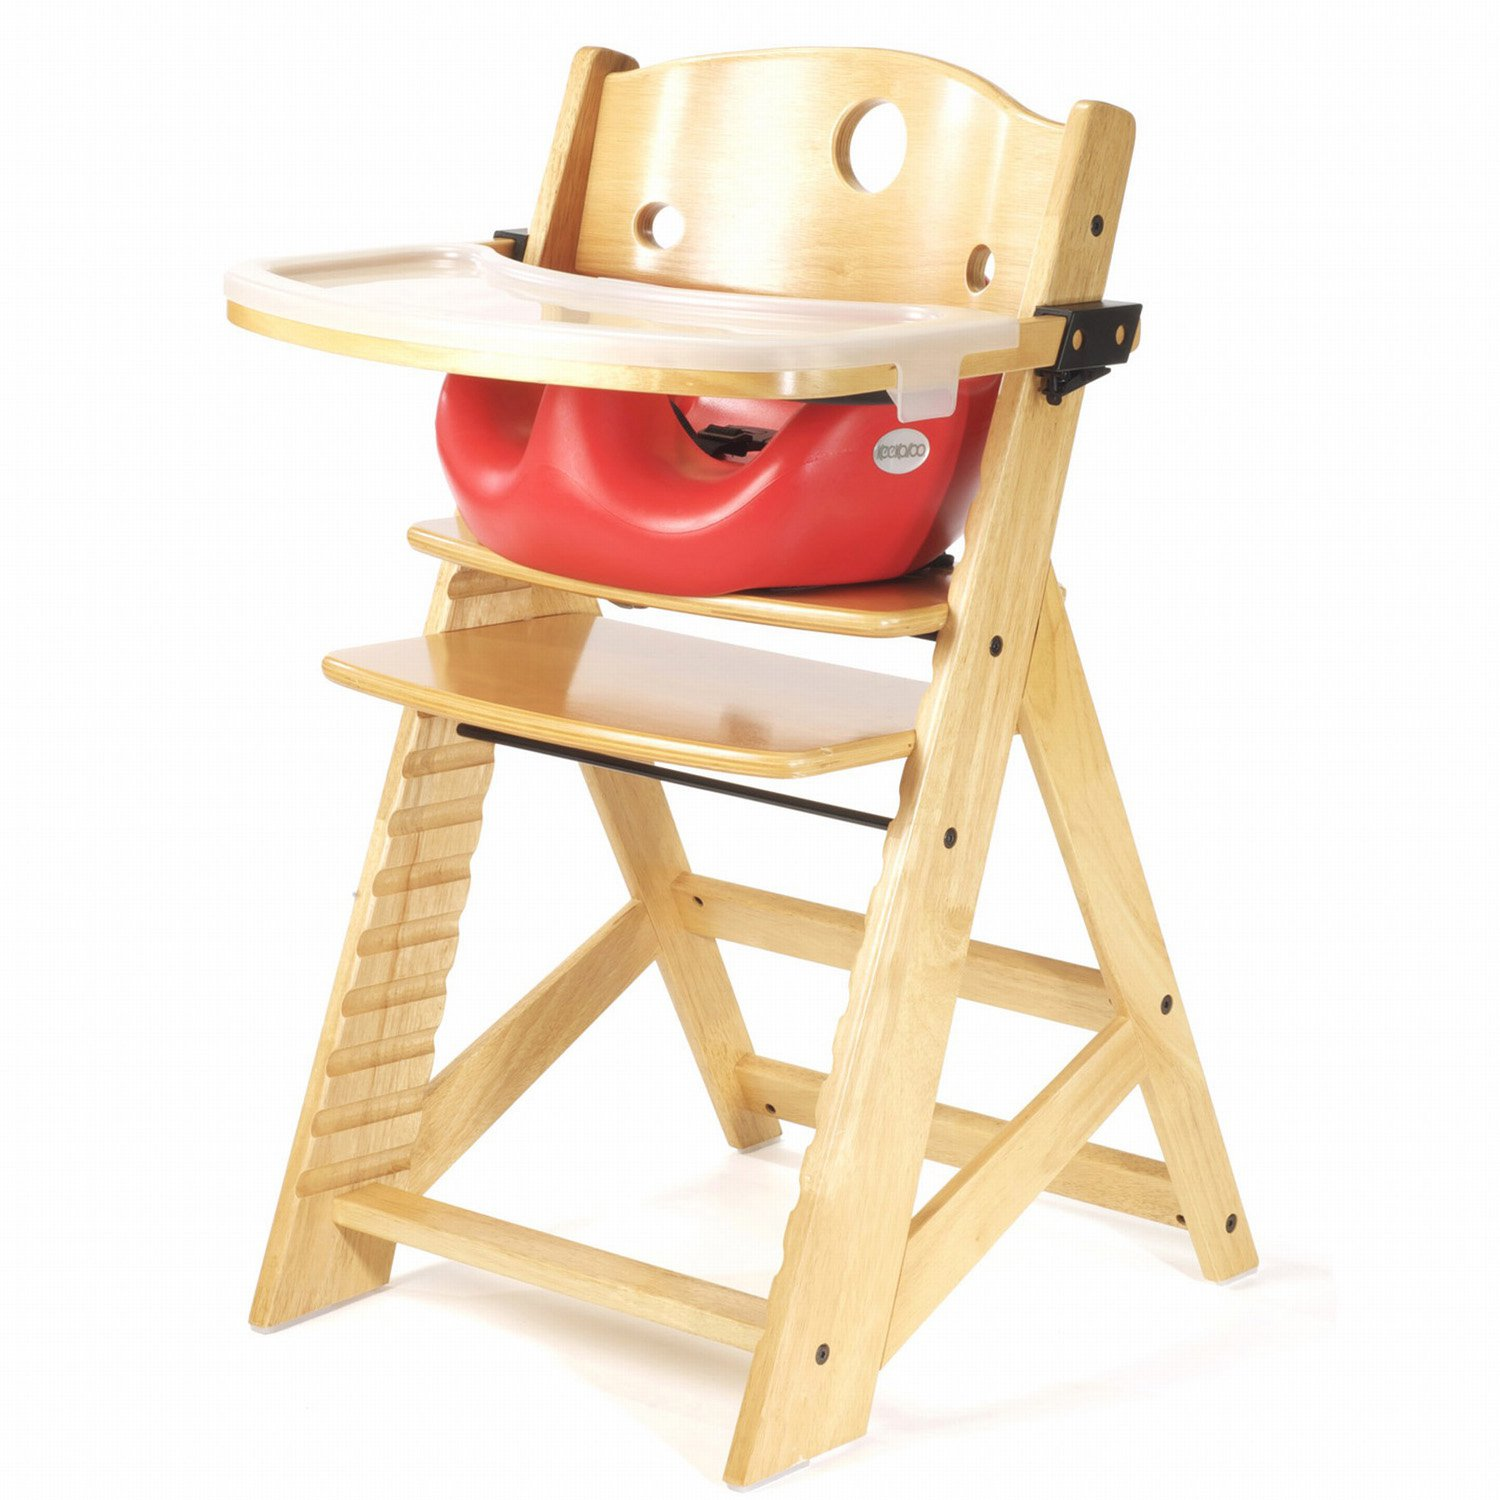 Keekaroo Height Right High Chair with Infant Seat & Tray Cherry by Keekaroo